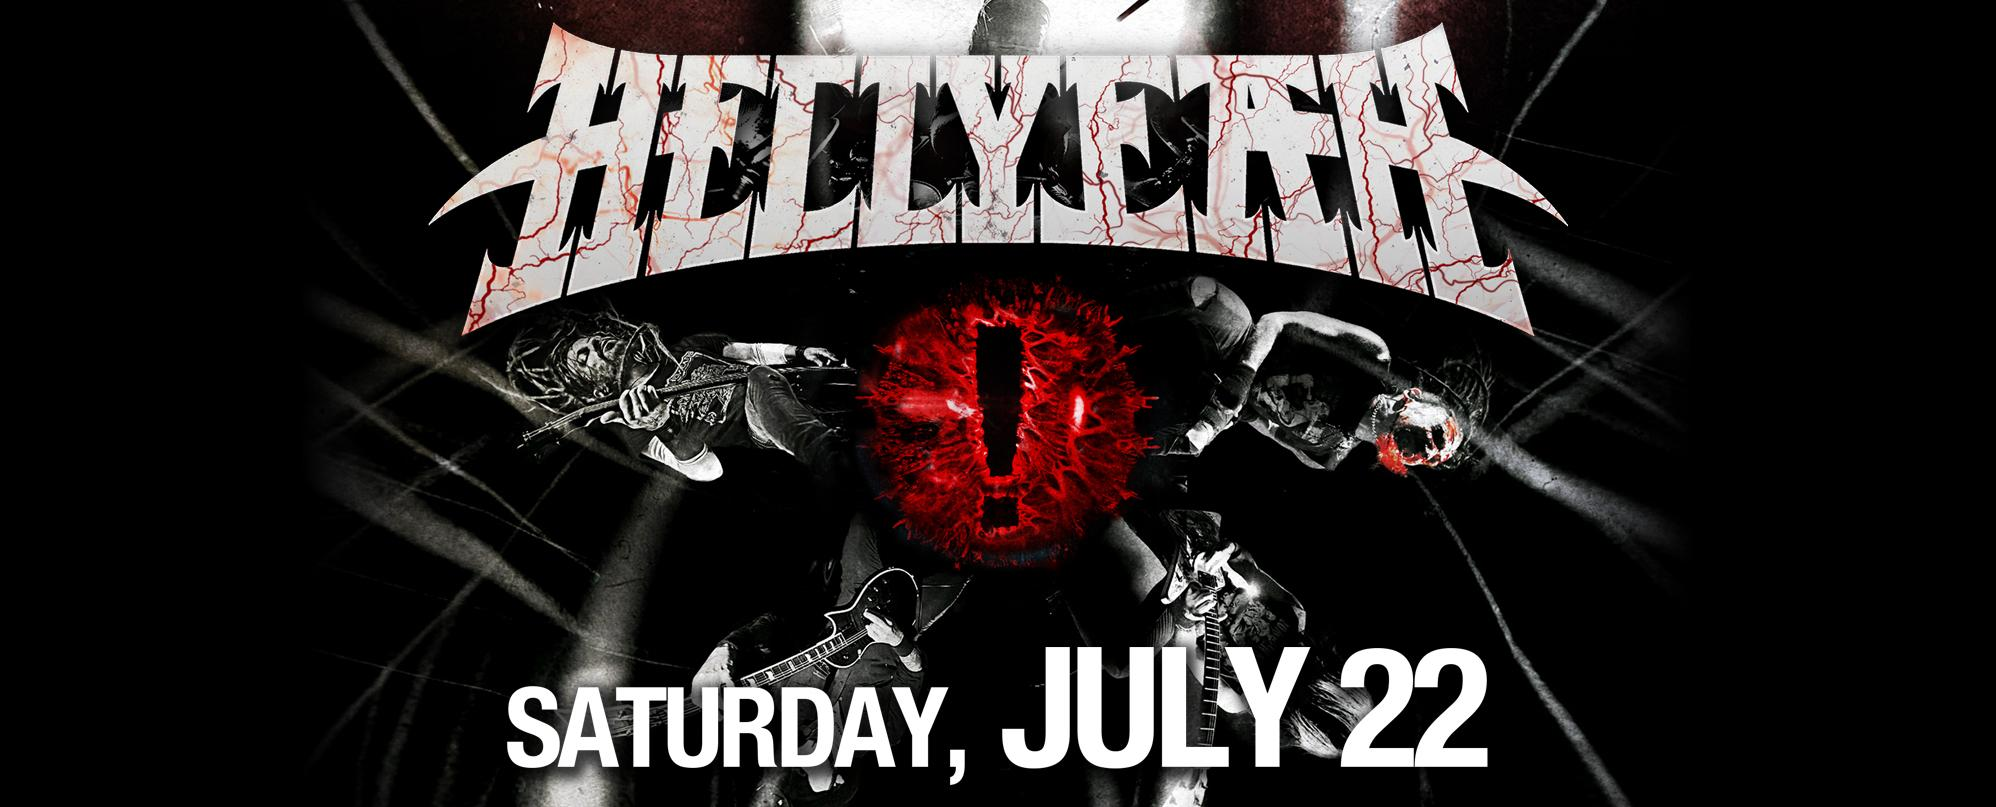 HELLYEAH: UNDEN!ABLE World Tour